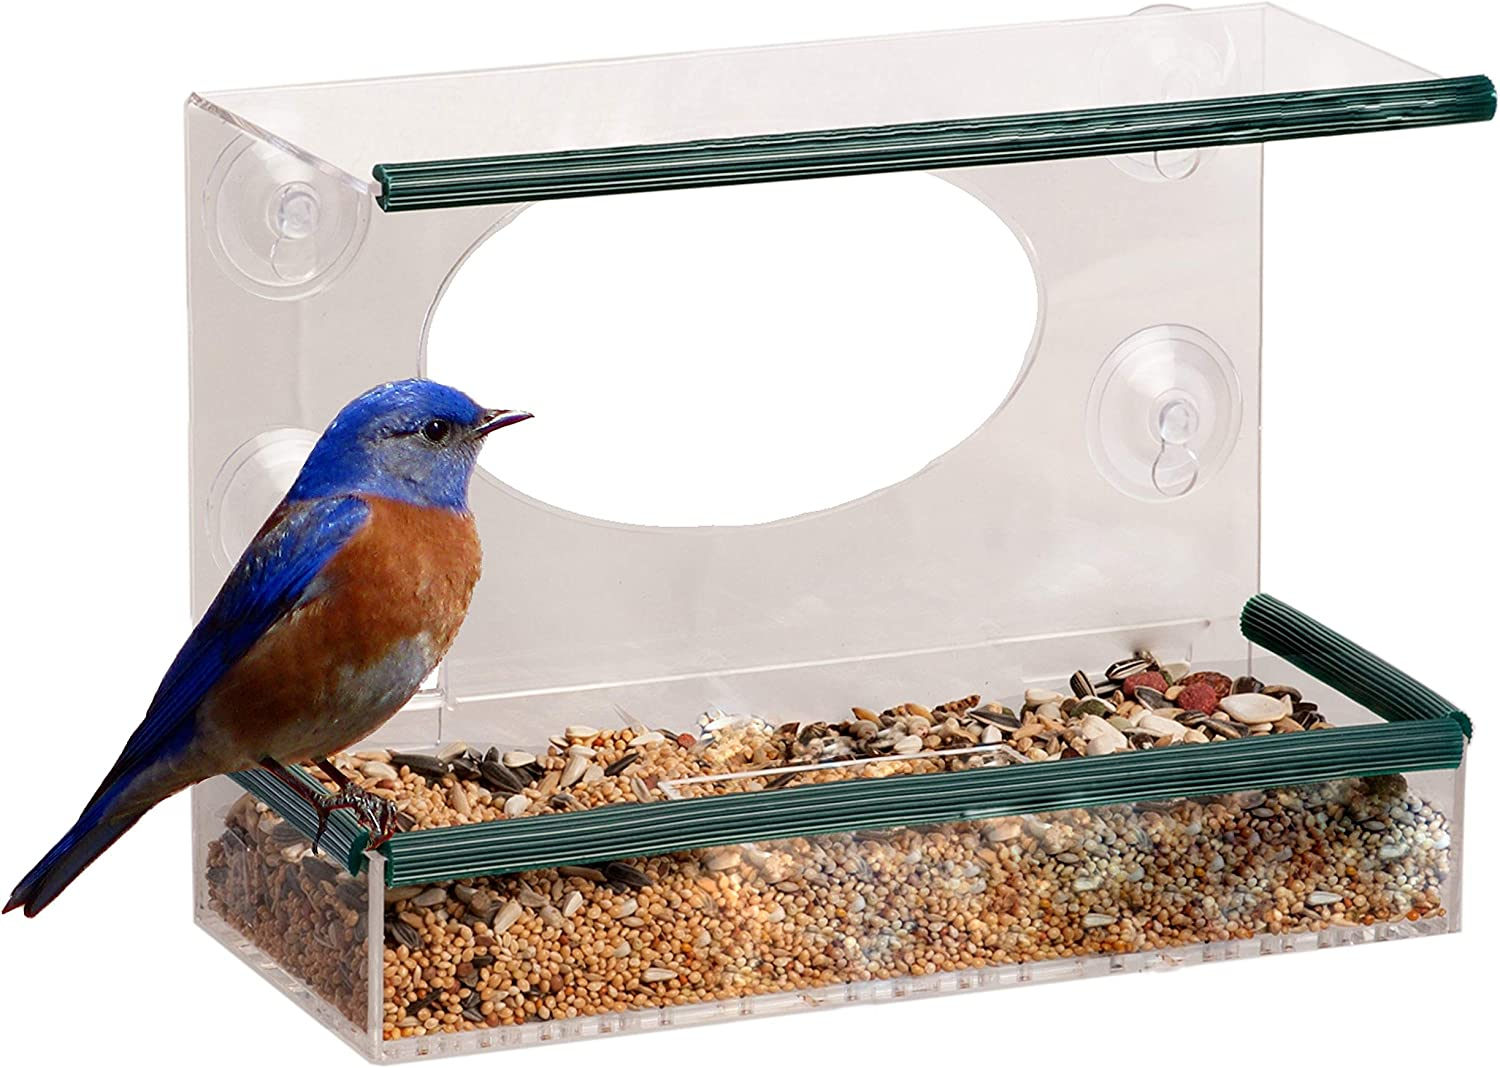 2 x WINDOW BIRD FEEDER TABLE clear glass viewing suction pad